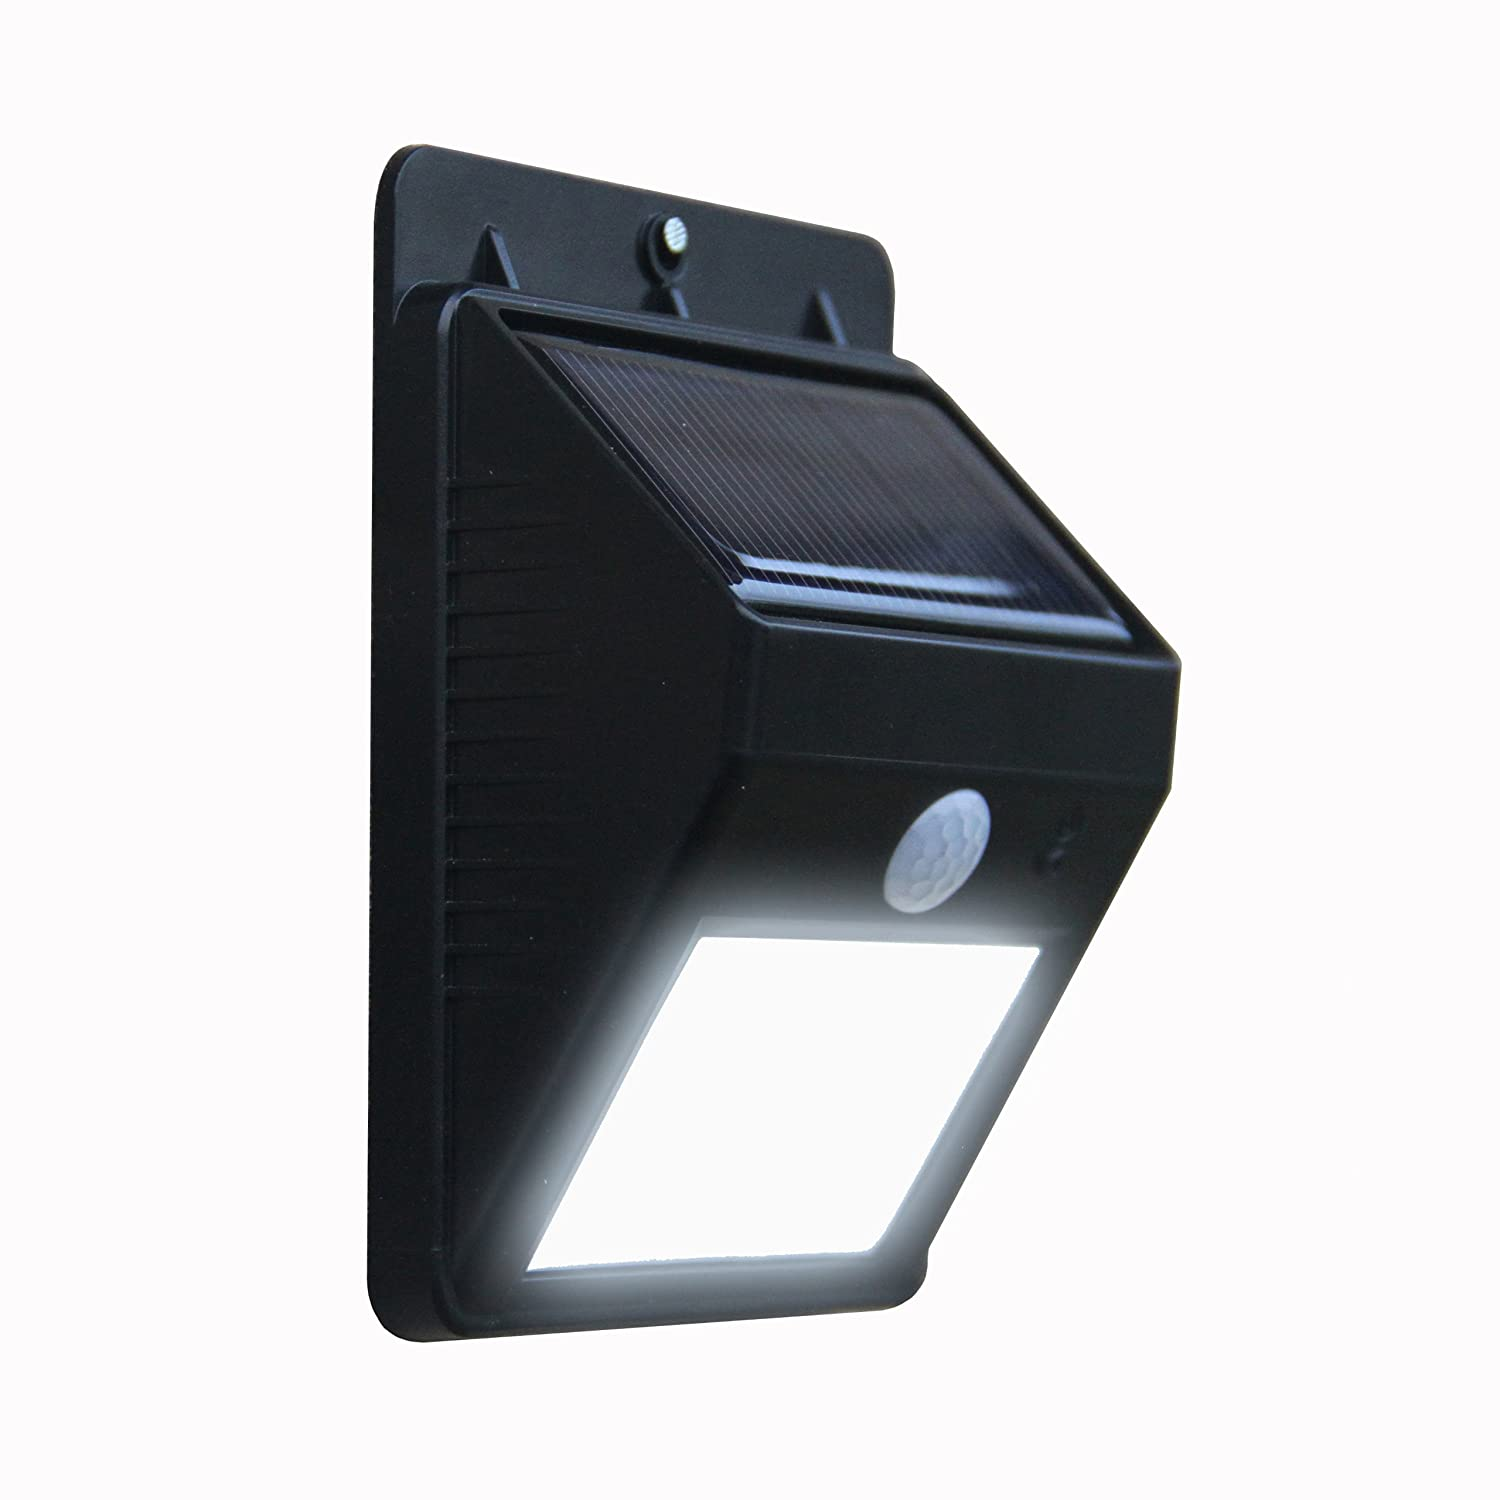 outdoor led wireless solar powered motion sensor light security lamp detector ebay. Black Bedroom Furniture Sets. Home Design Ideas